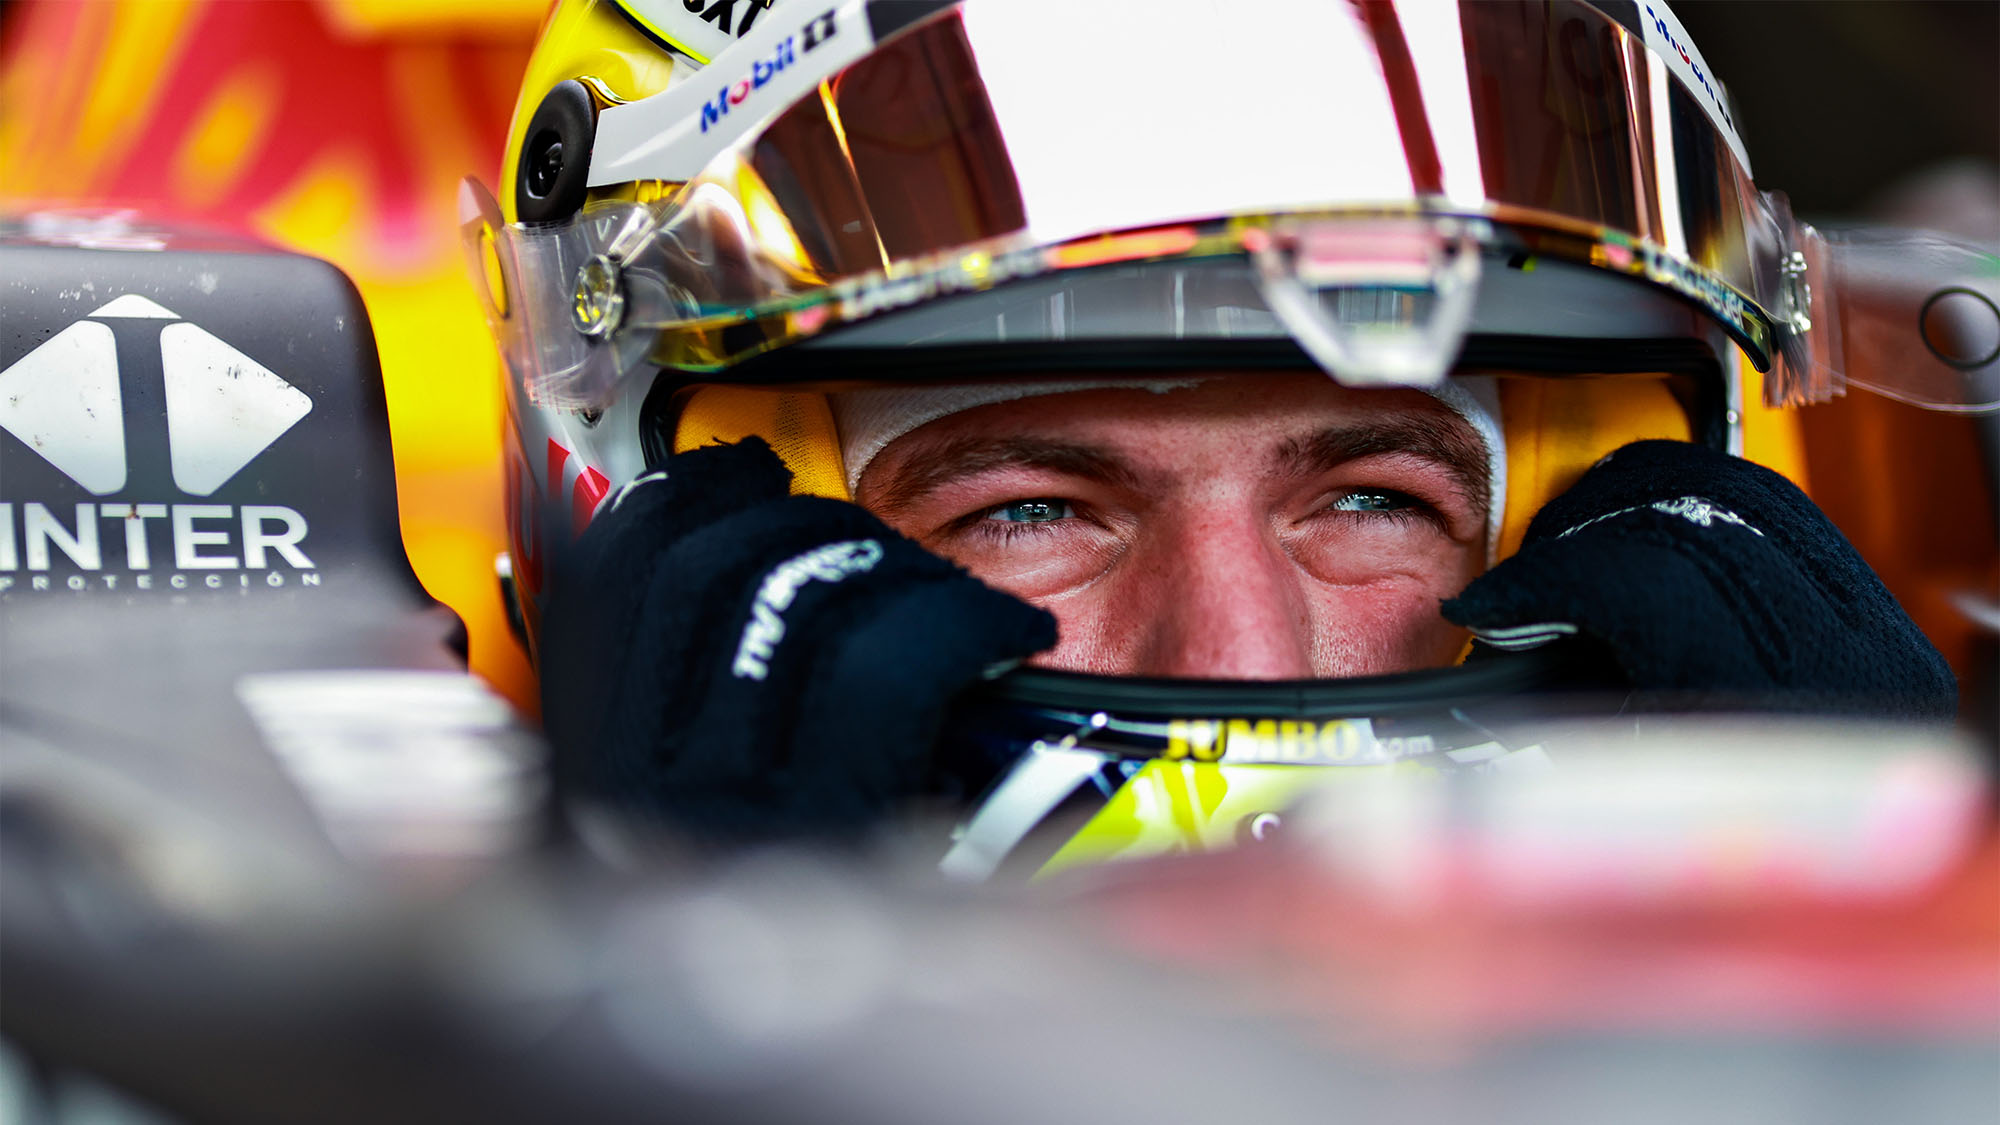 SPIELBERG, AUSTRIA - JUNE 25: Max Verstappen of Netherlands and Red Bull Racing prepares to drive in the garage during practice ahead of the F1 Grand Prix of Styria at Red Bull Ring on June 25, 2021 in Spielberg, Austria. (Photo by Mark Thompson/Getty Images)